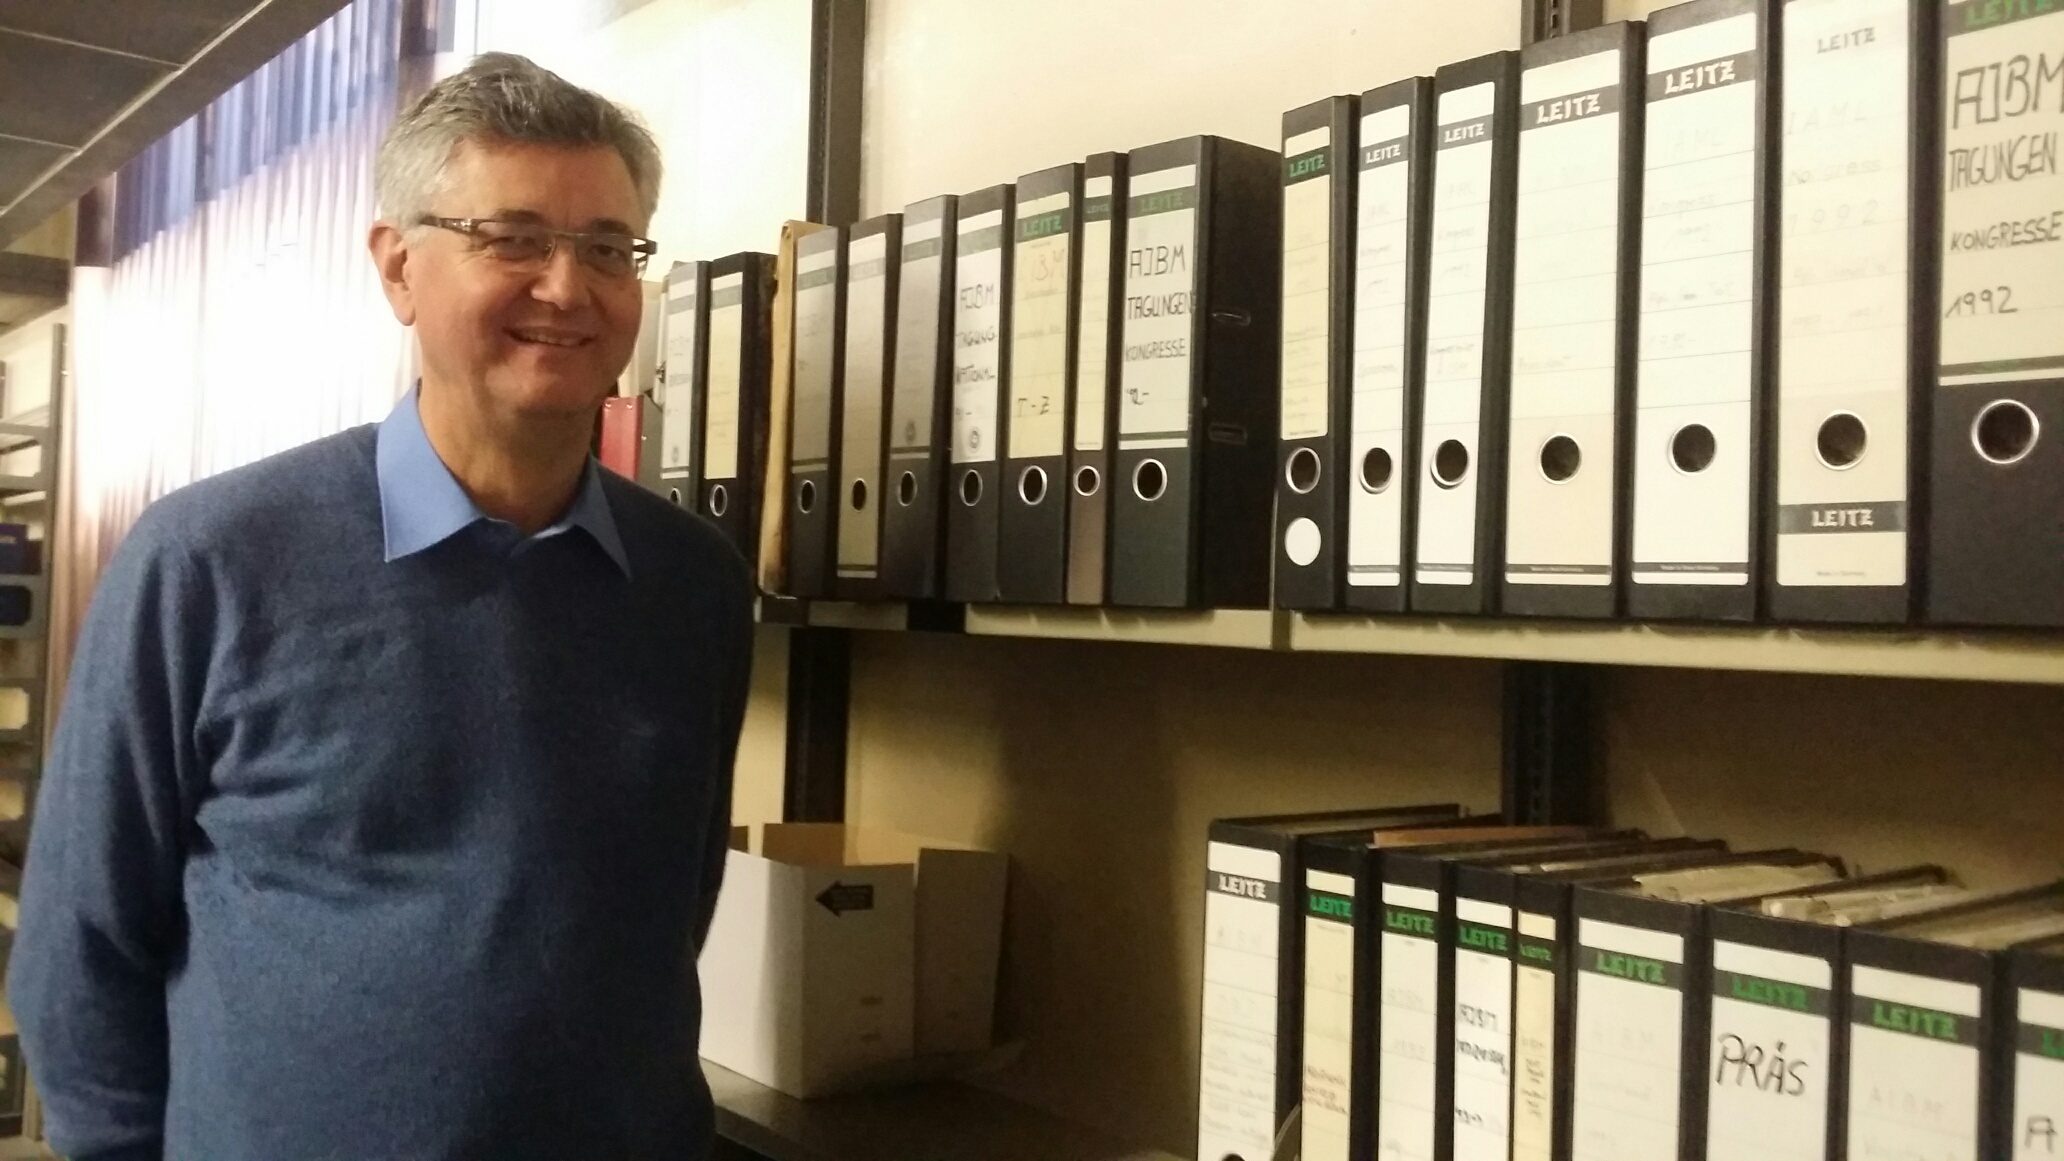 Jürgen Diet with the IAML Germany archive